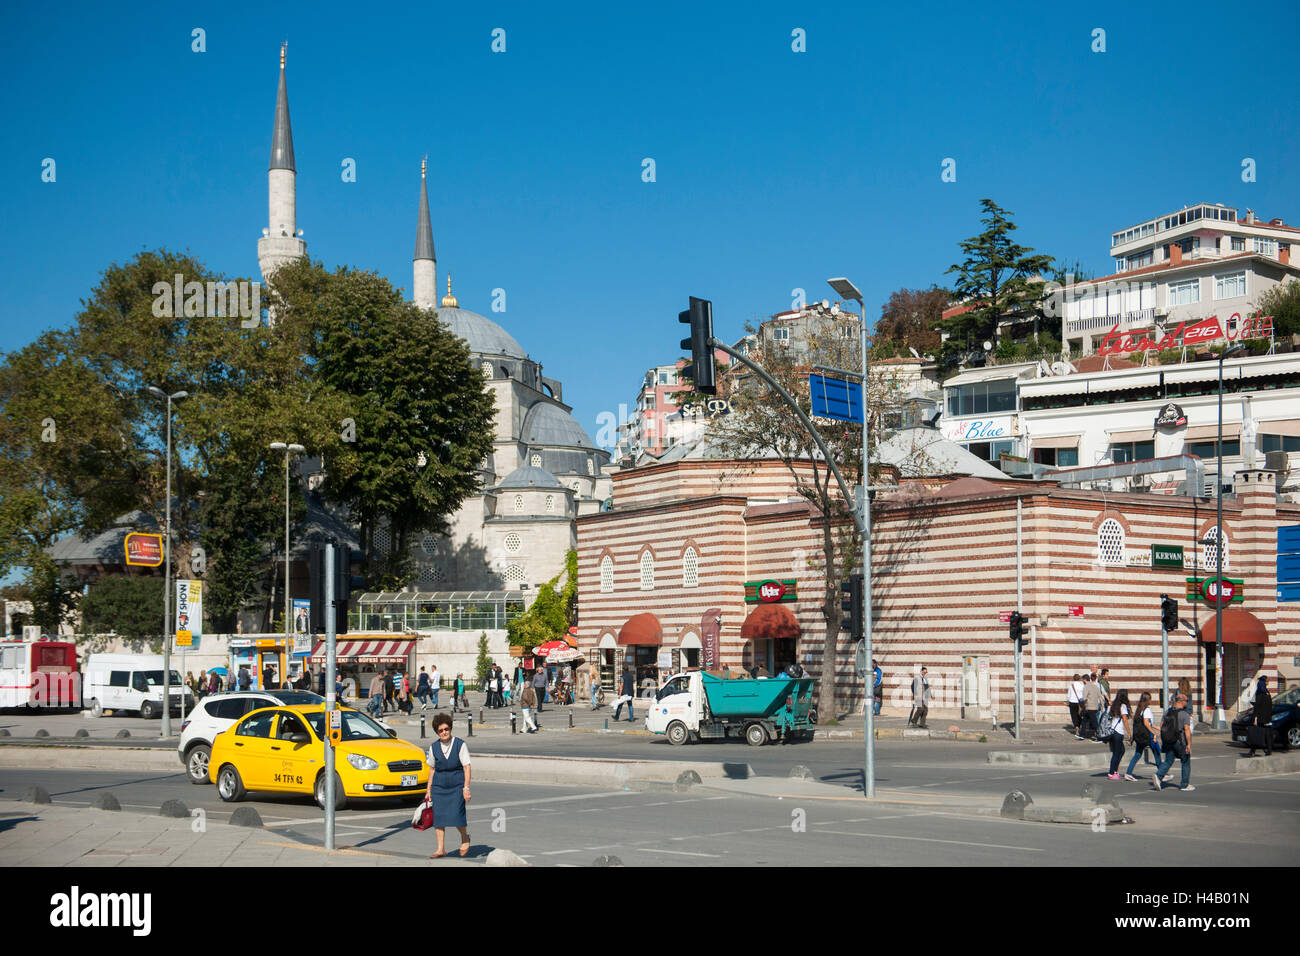 Turkey, Istanbul, Üsküdar, Mihrimah sultan Camii (Iskele Camii) from 1546 to 1548 from the architect Sinan - Stock Image